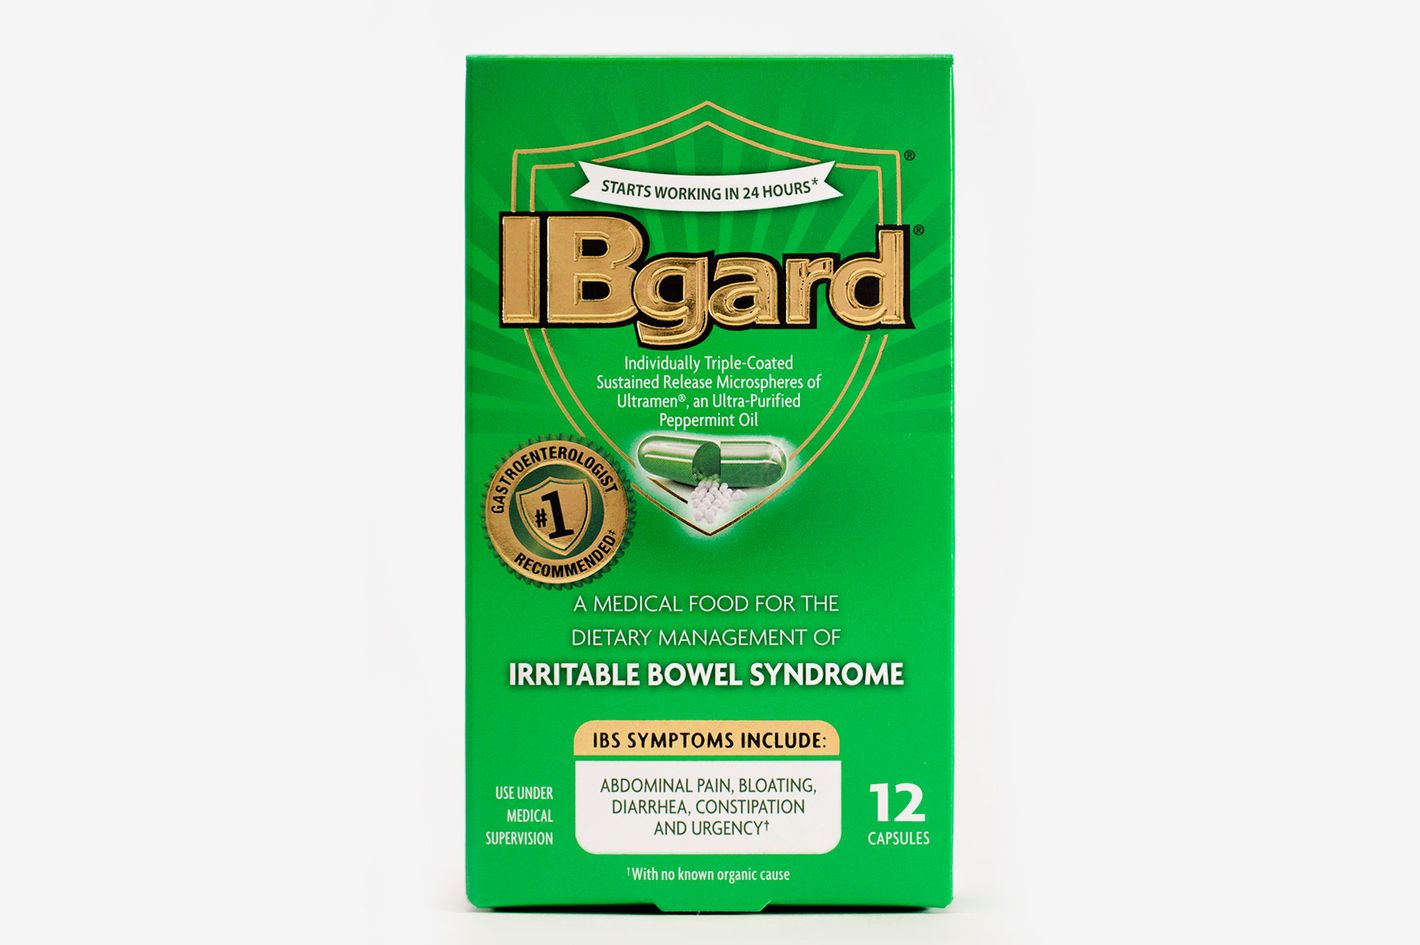 IBgard Peppermint Pills